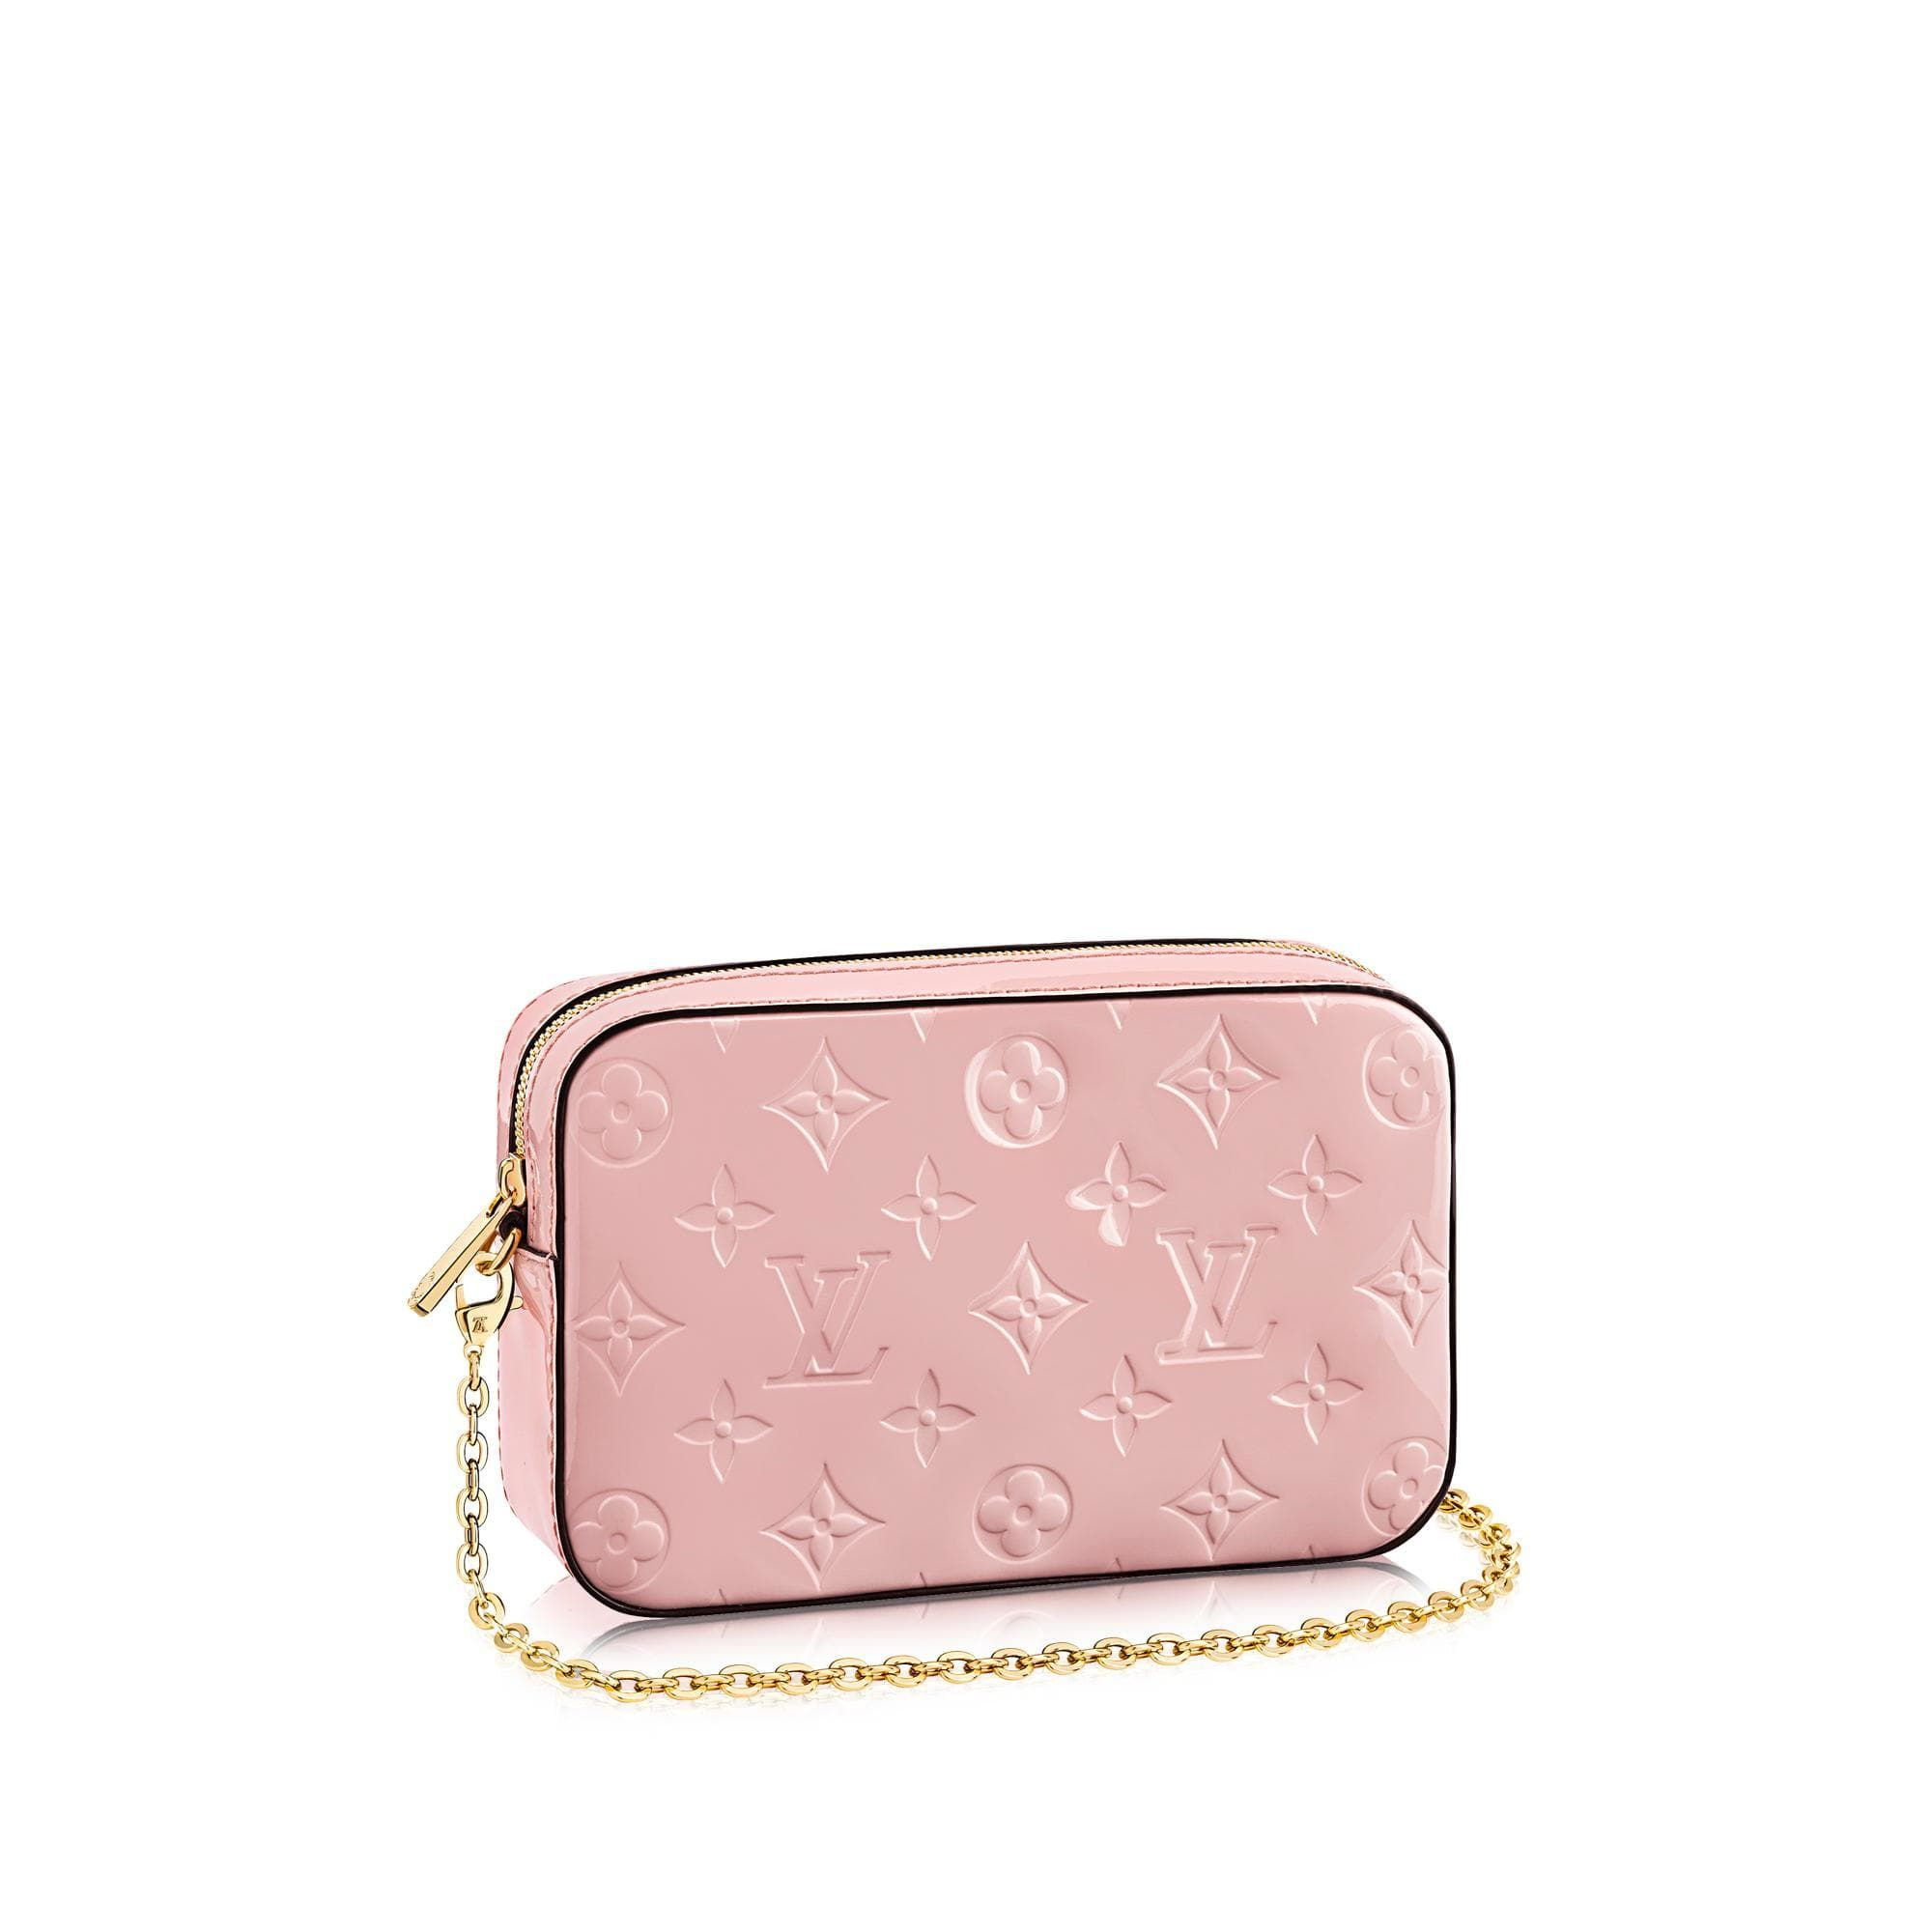 4055cb3238bf LV Camera Pouch - This adorable camera pouch in embossed Monogram patent  leather is a must-have that will make any look pop. Inspired by the  customized ...